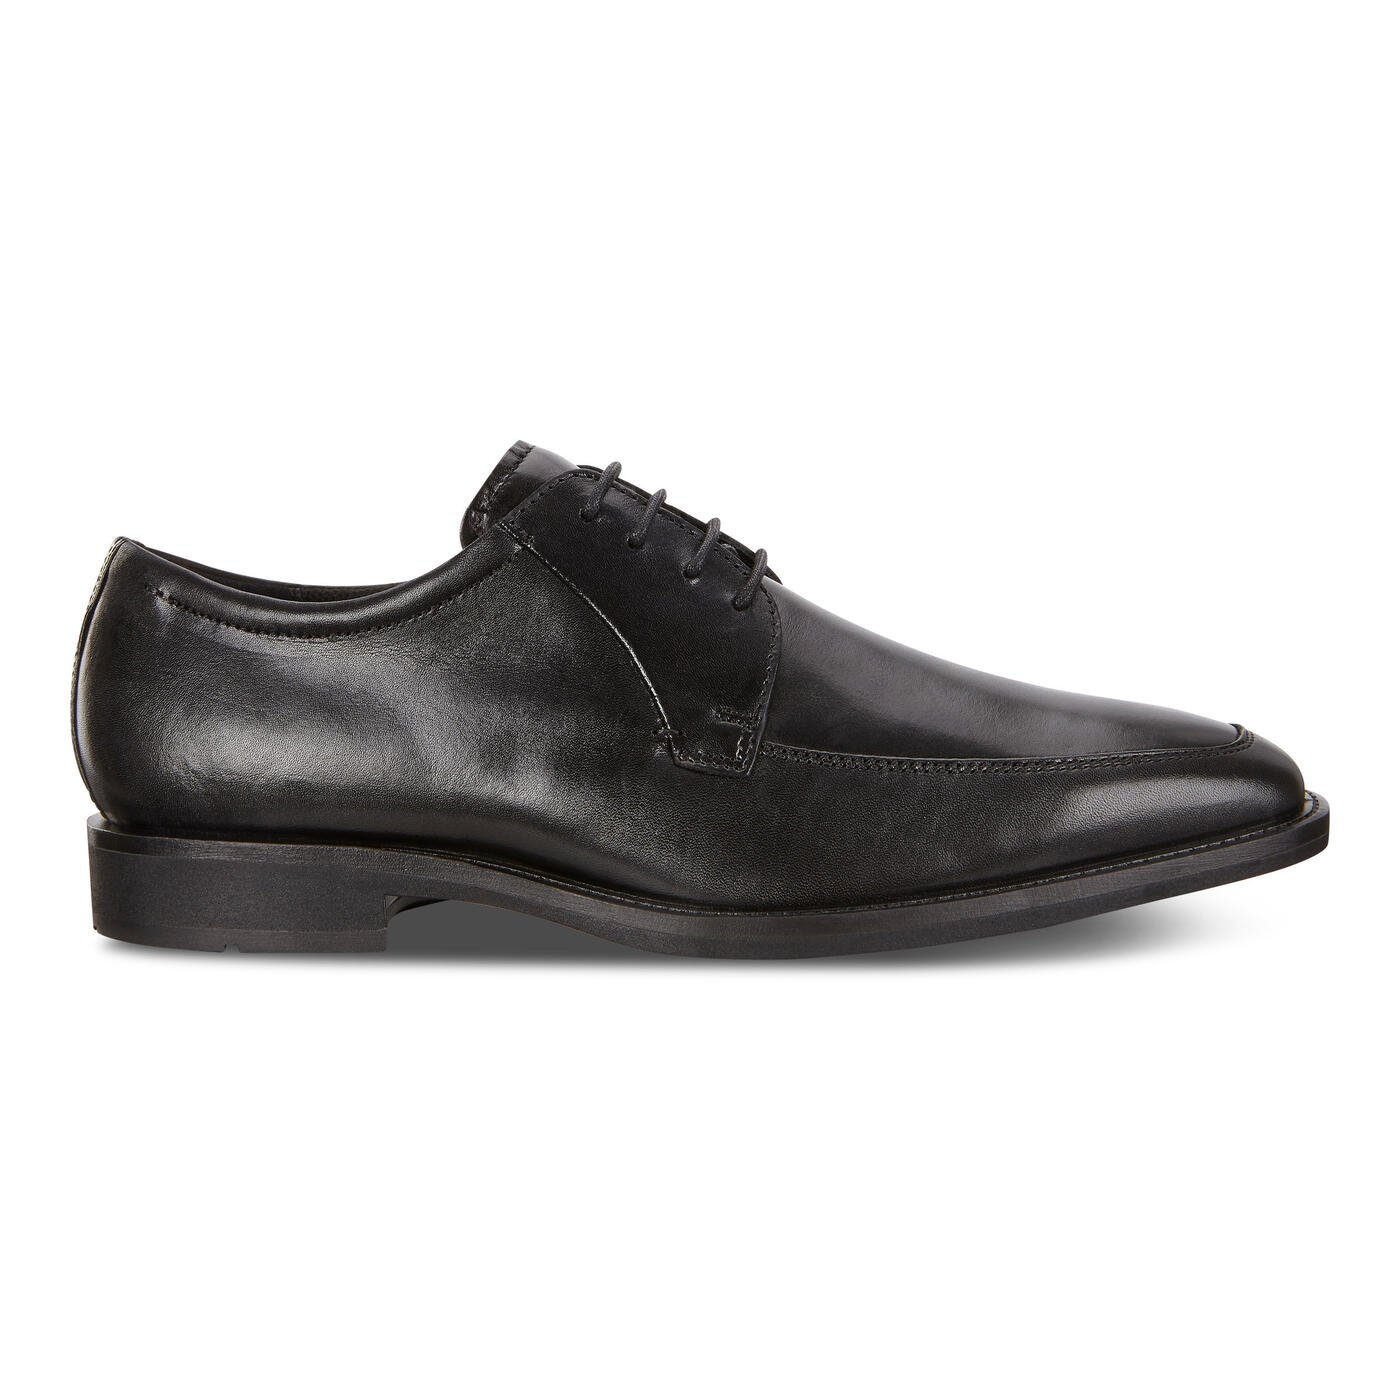 ECCO Calcan Derby Shoes